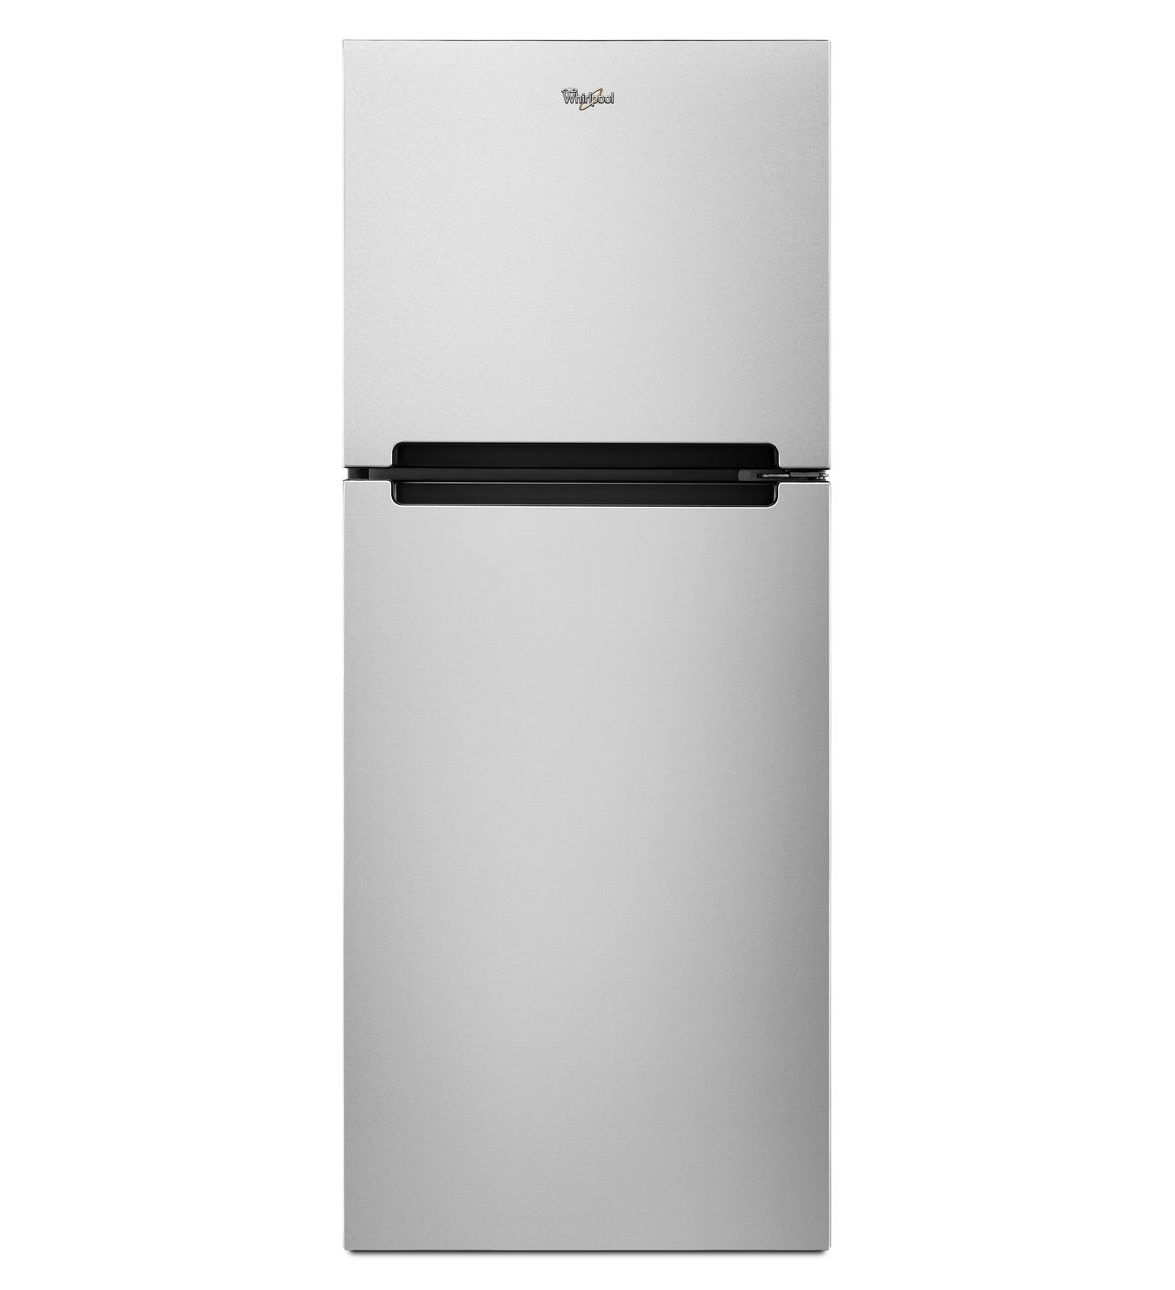 Whirlpool 25inches wide Top Freezer Refrigerator more